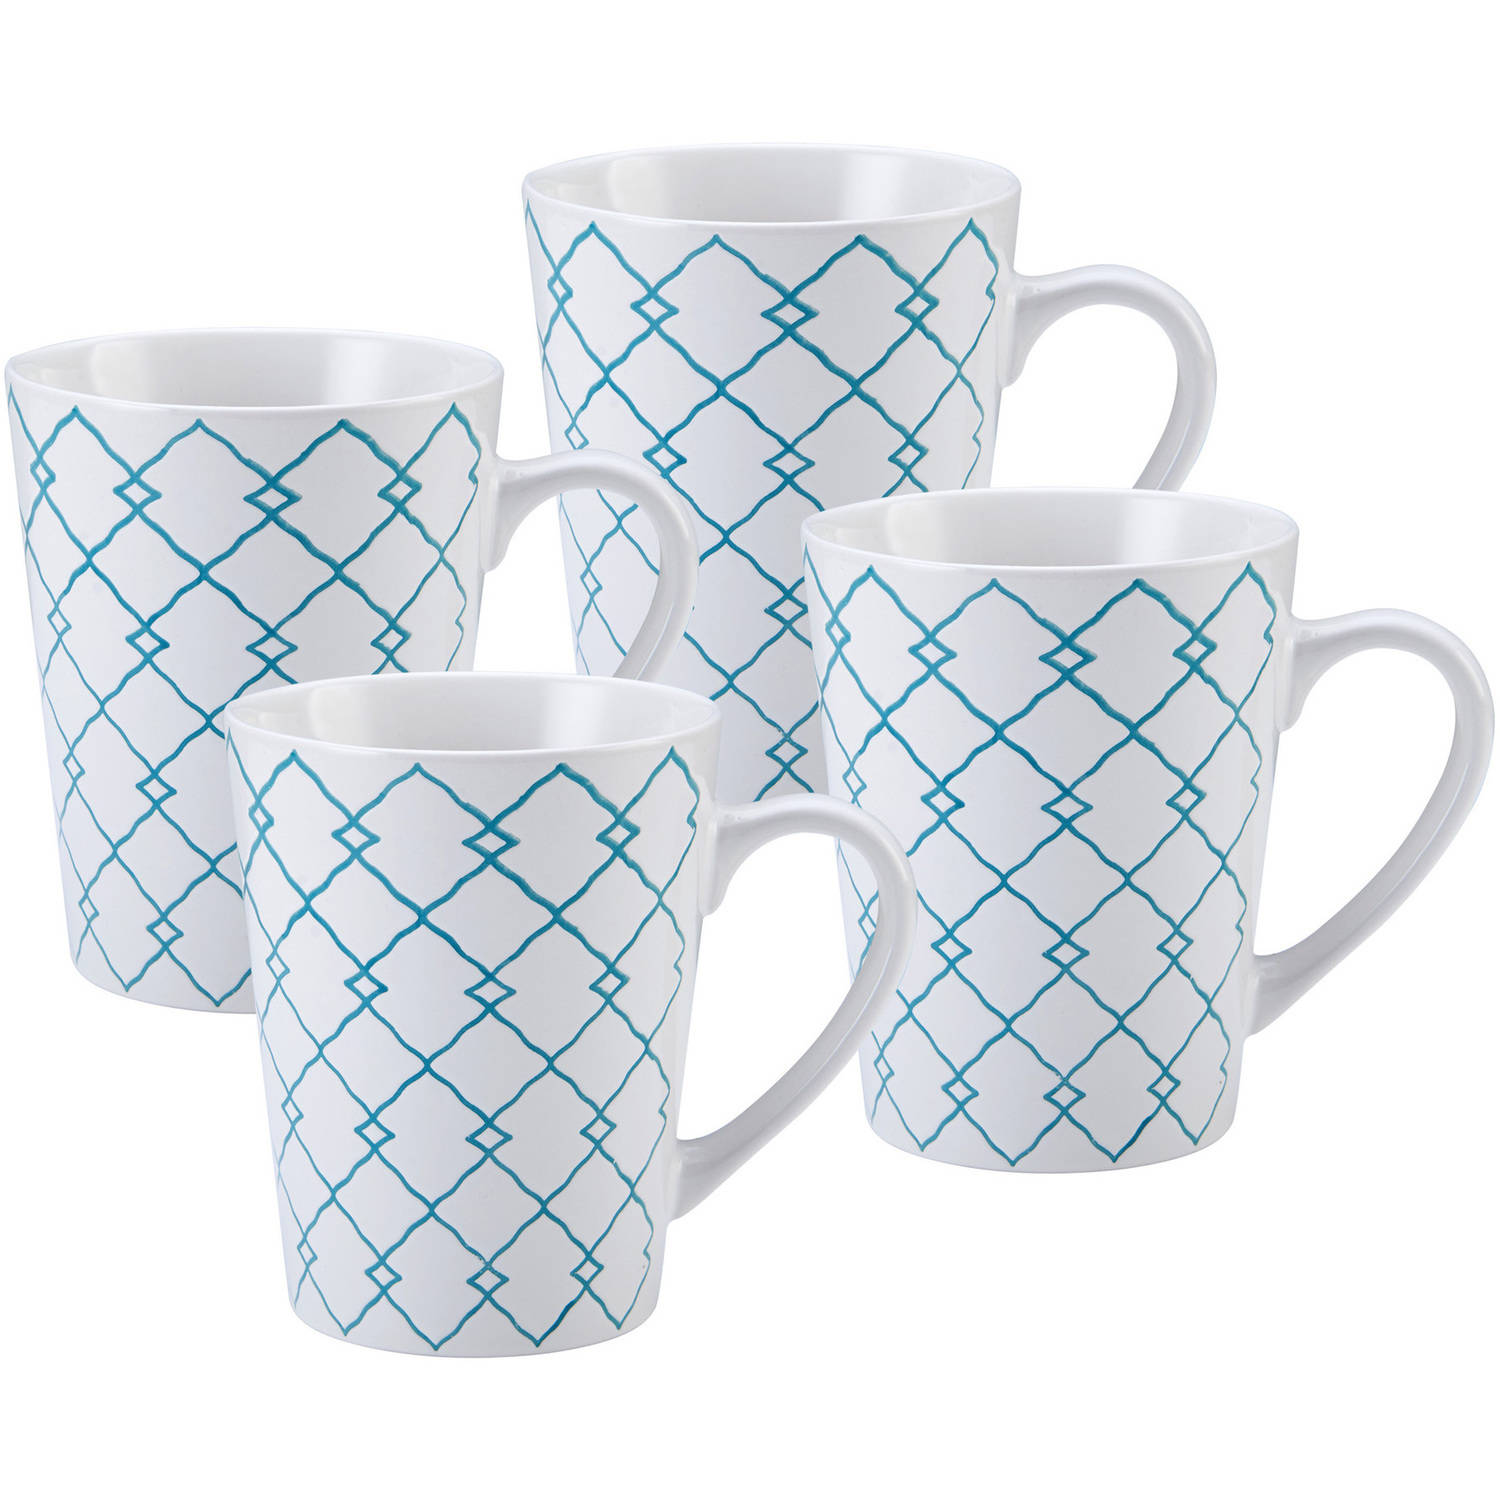 Pfaltzgraff Set of Four 27 Ounce Jumbo Teal Squares Coffee Mugs